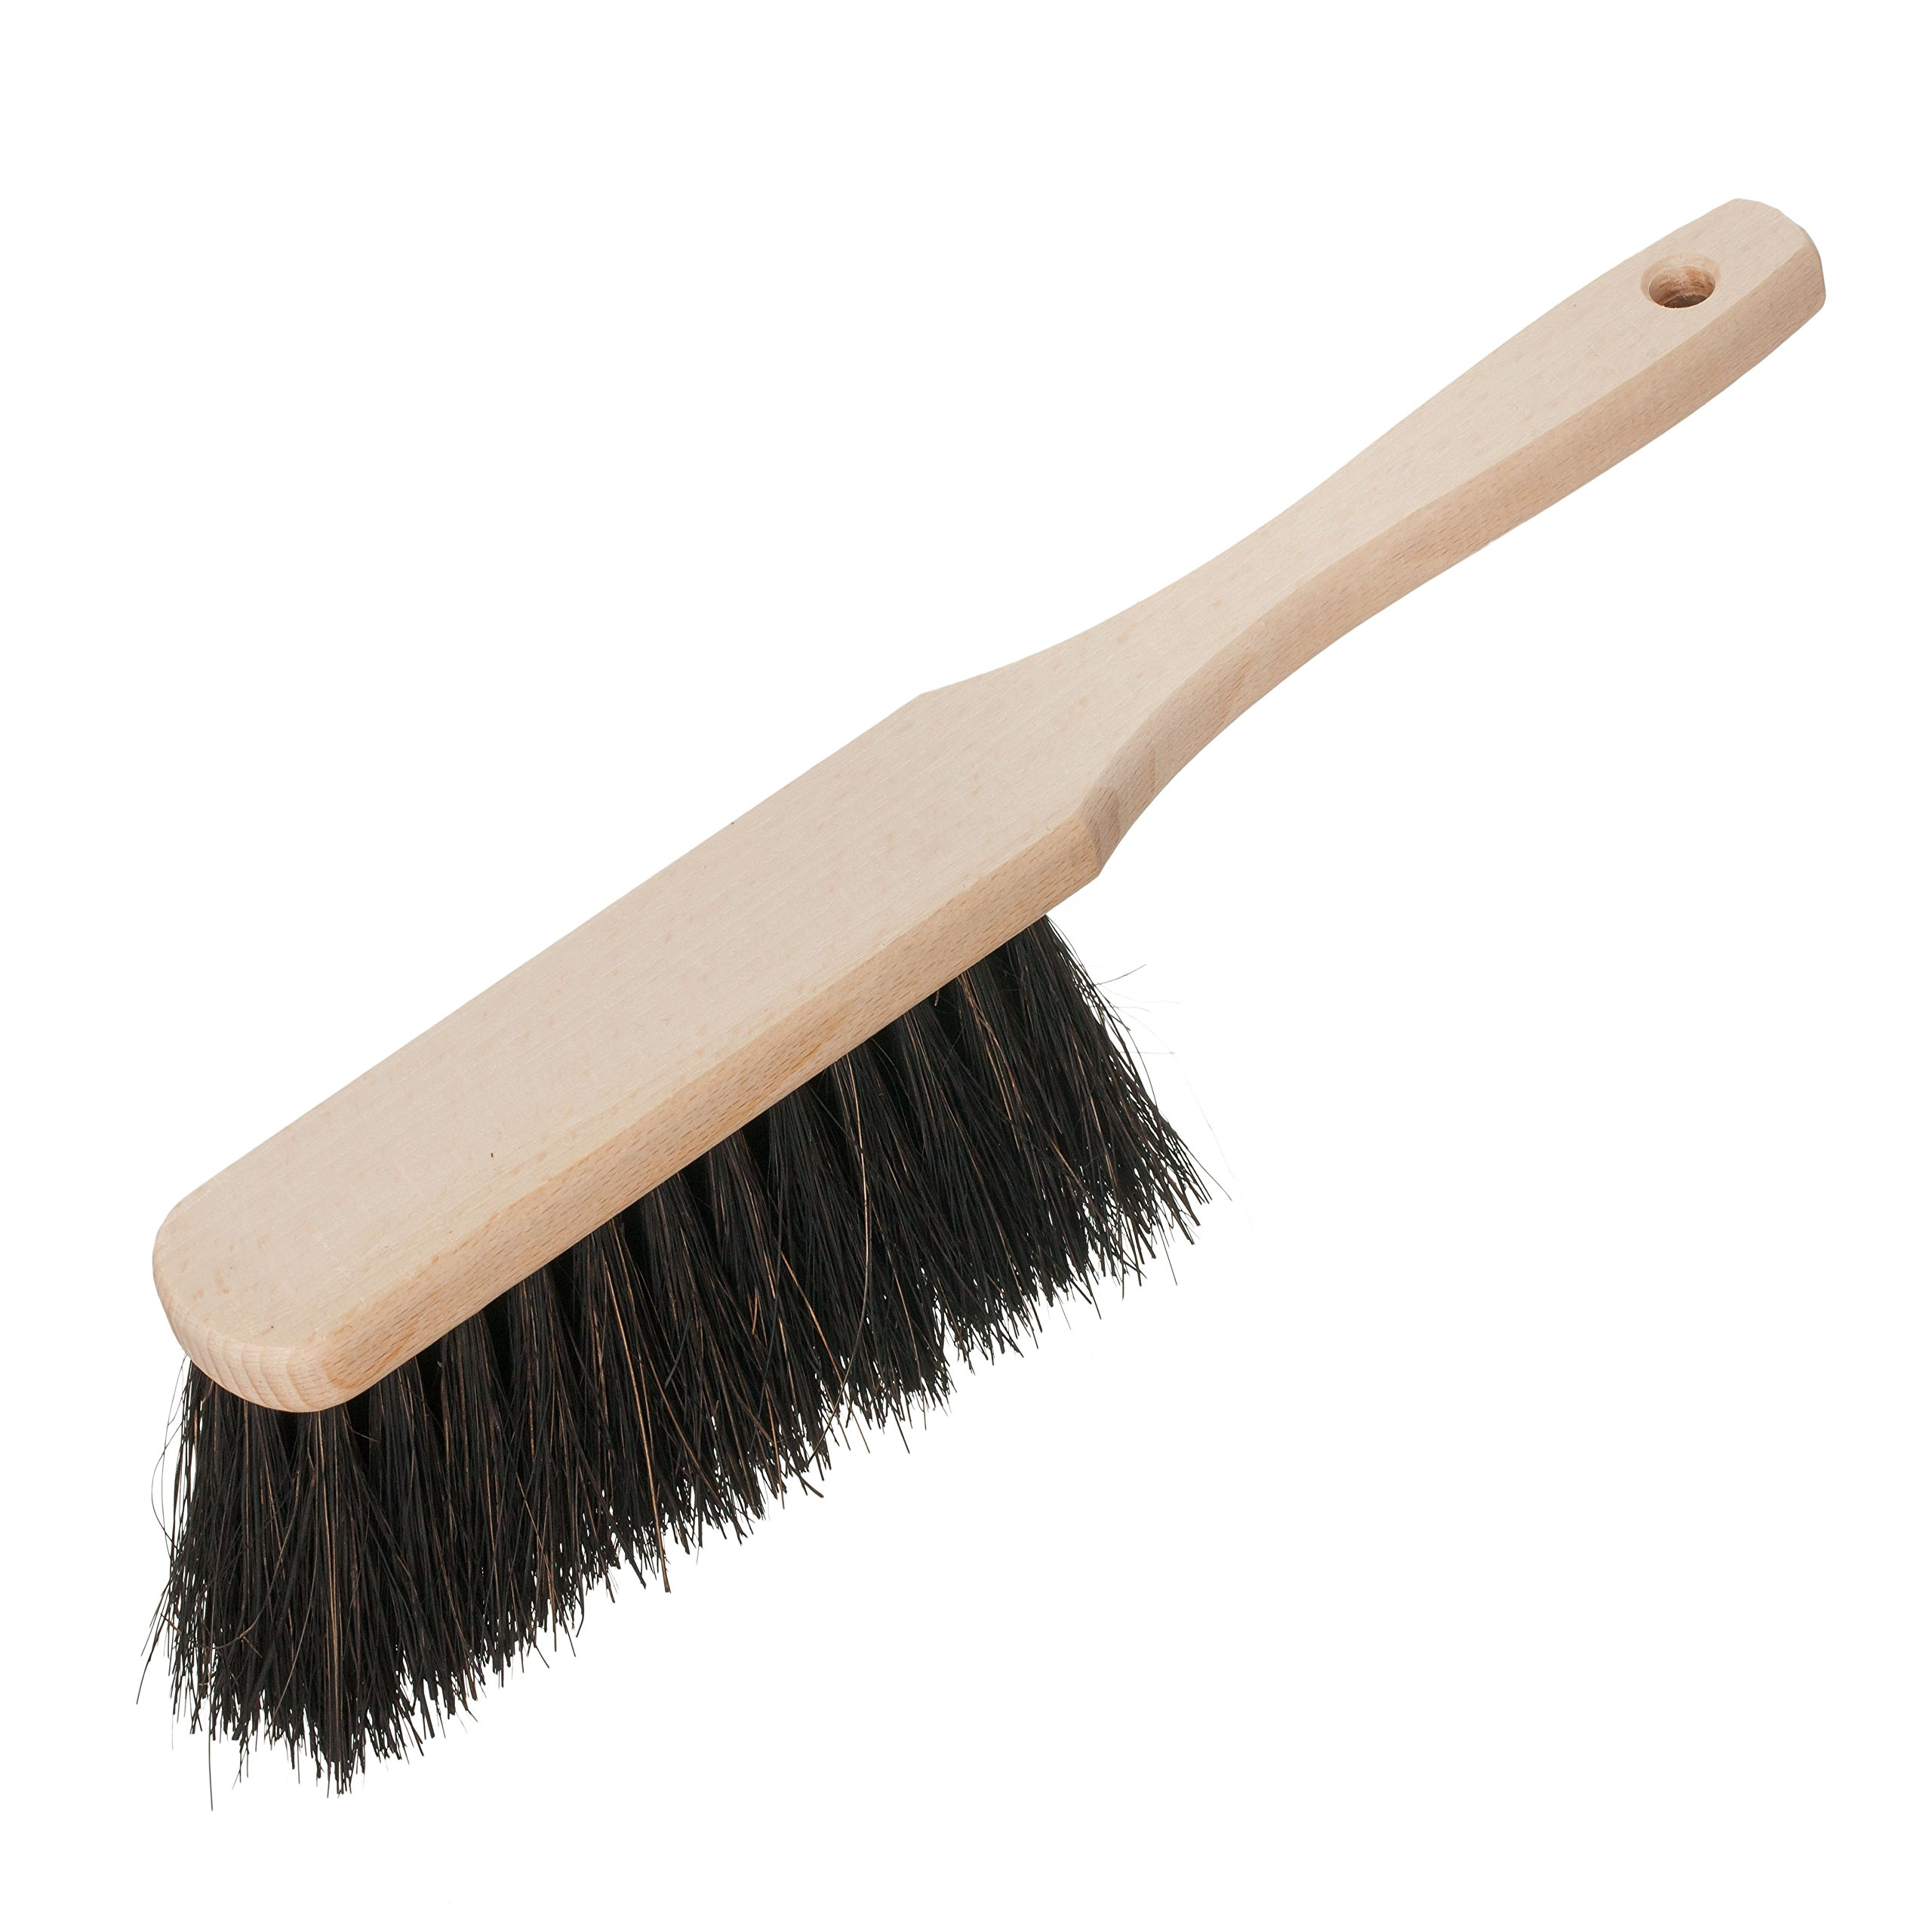 Redecker Arenga Fiber Hand Brush with Untreated Beechwood Handle, 11-Inches by REDECKER